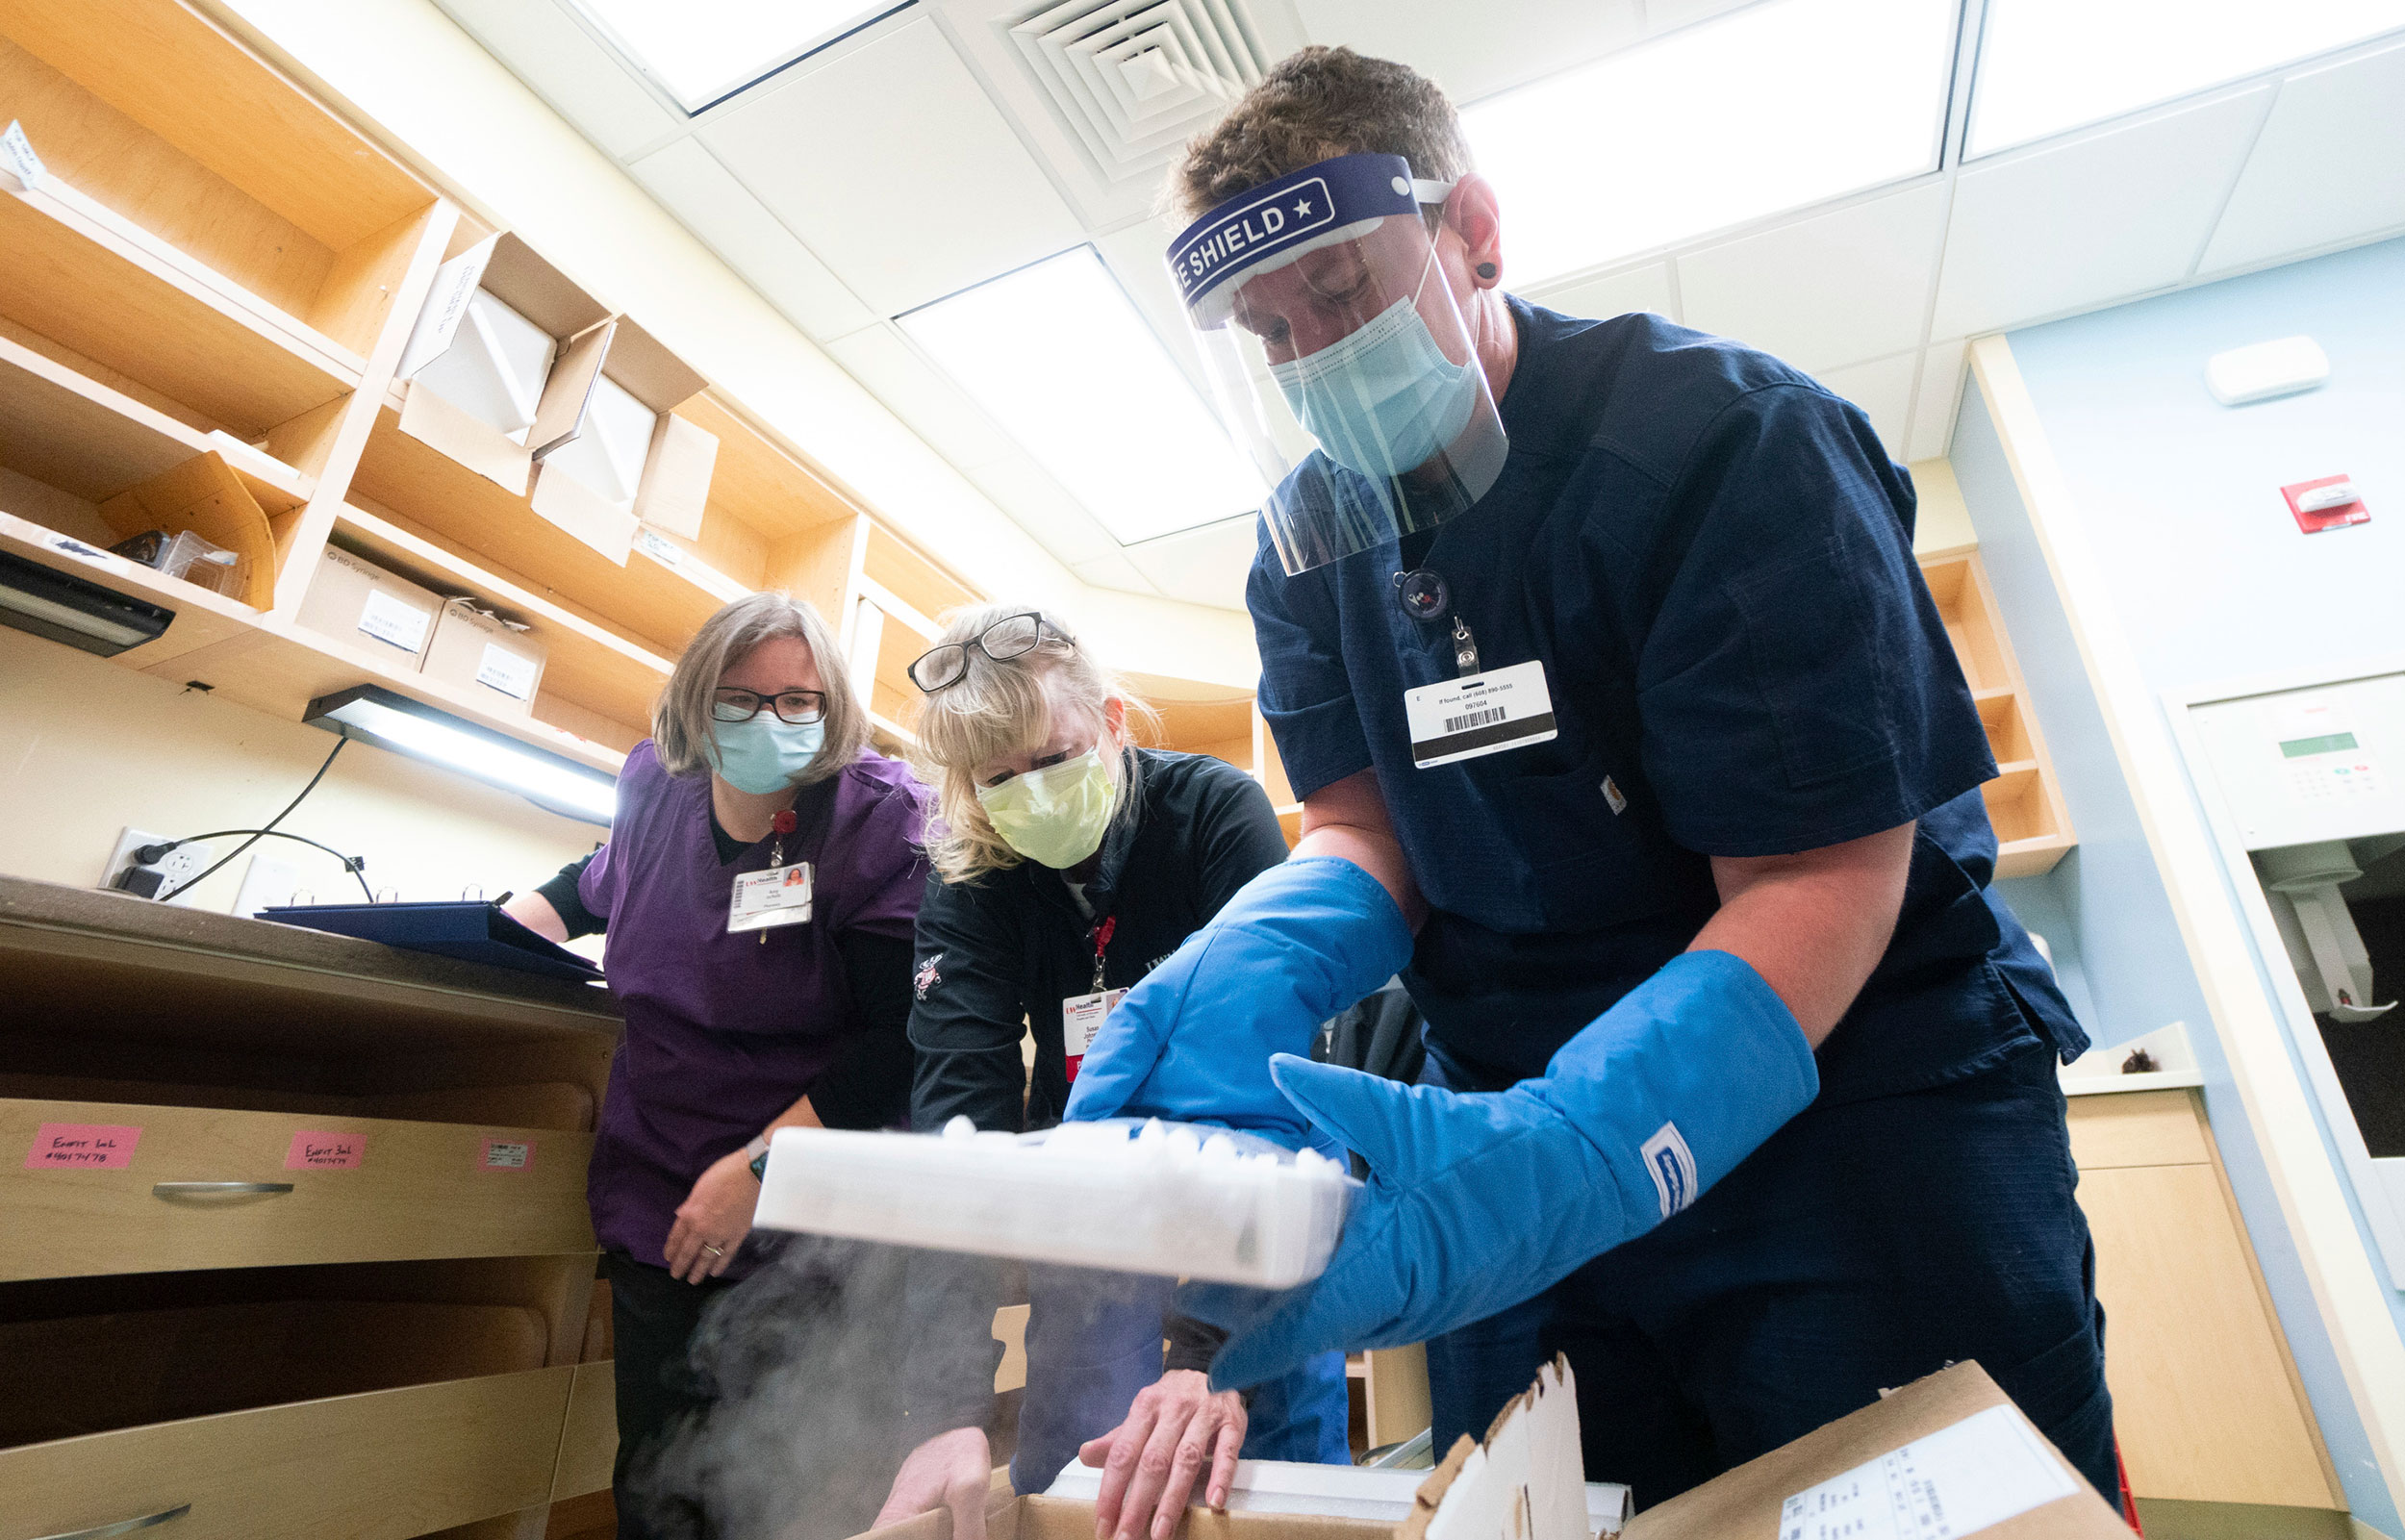 From left, UW Health pharmacy techs Amy Schultz, Susan Johnson and Nikolas Gardner unpack the first shipment of the Pfizer vaccine in Madison, Wisconsin, on Monday.